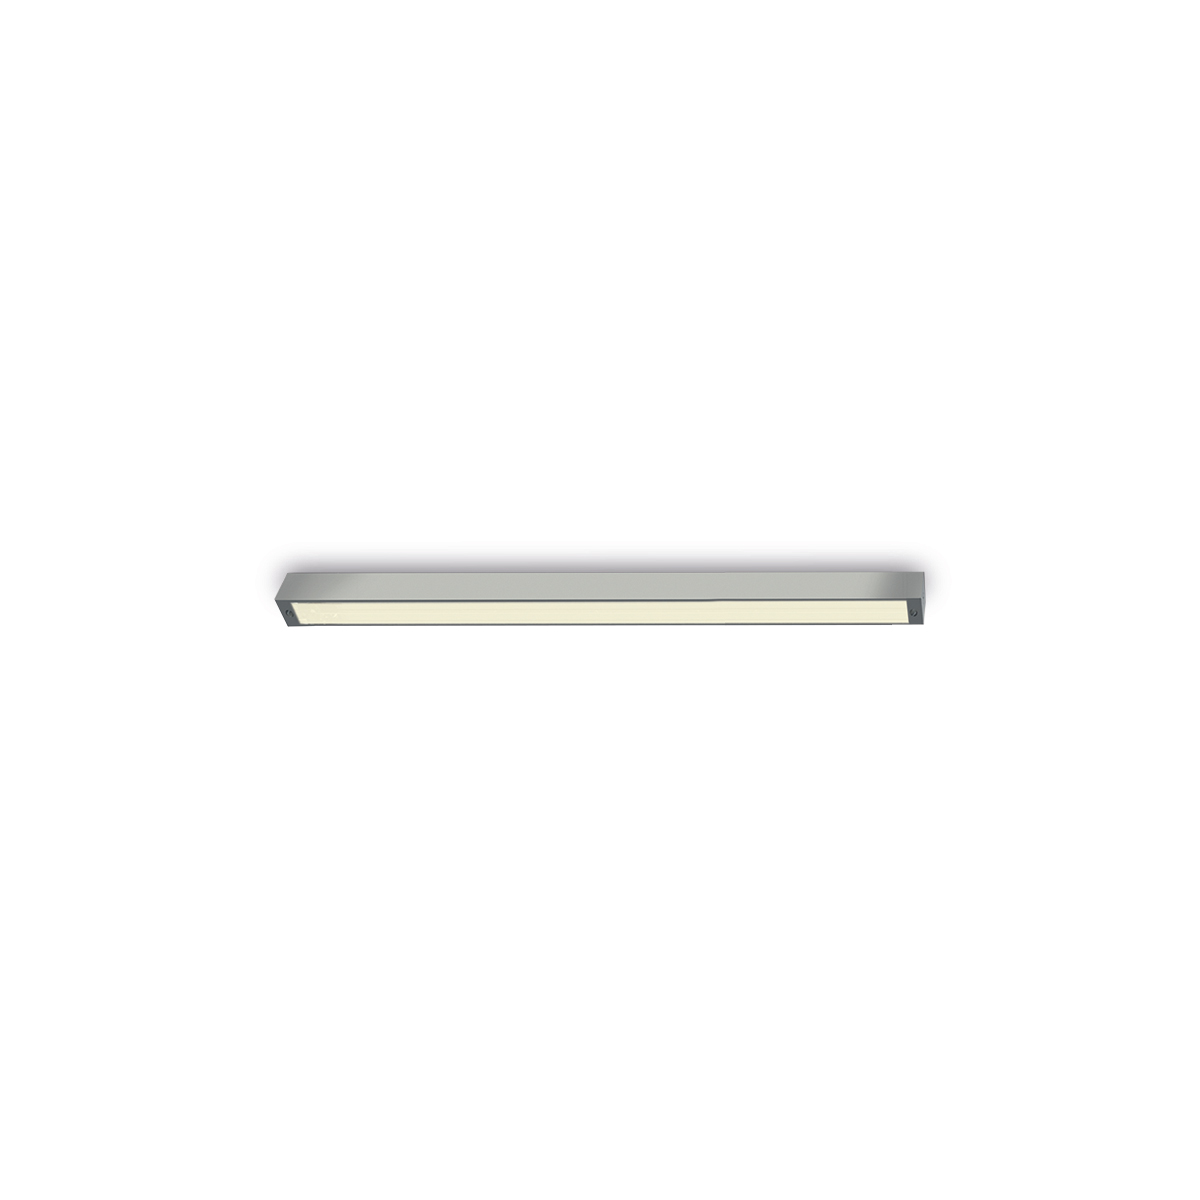 Top Light Only Choice Ceiling Deckenleuchte, 60 cm 8-601651A